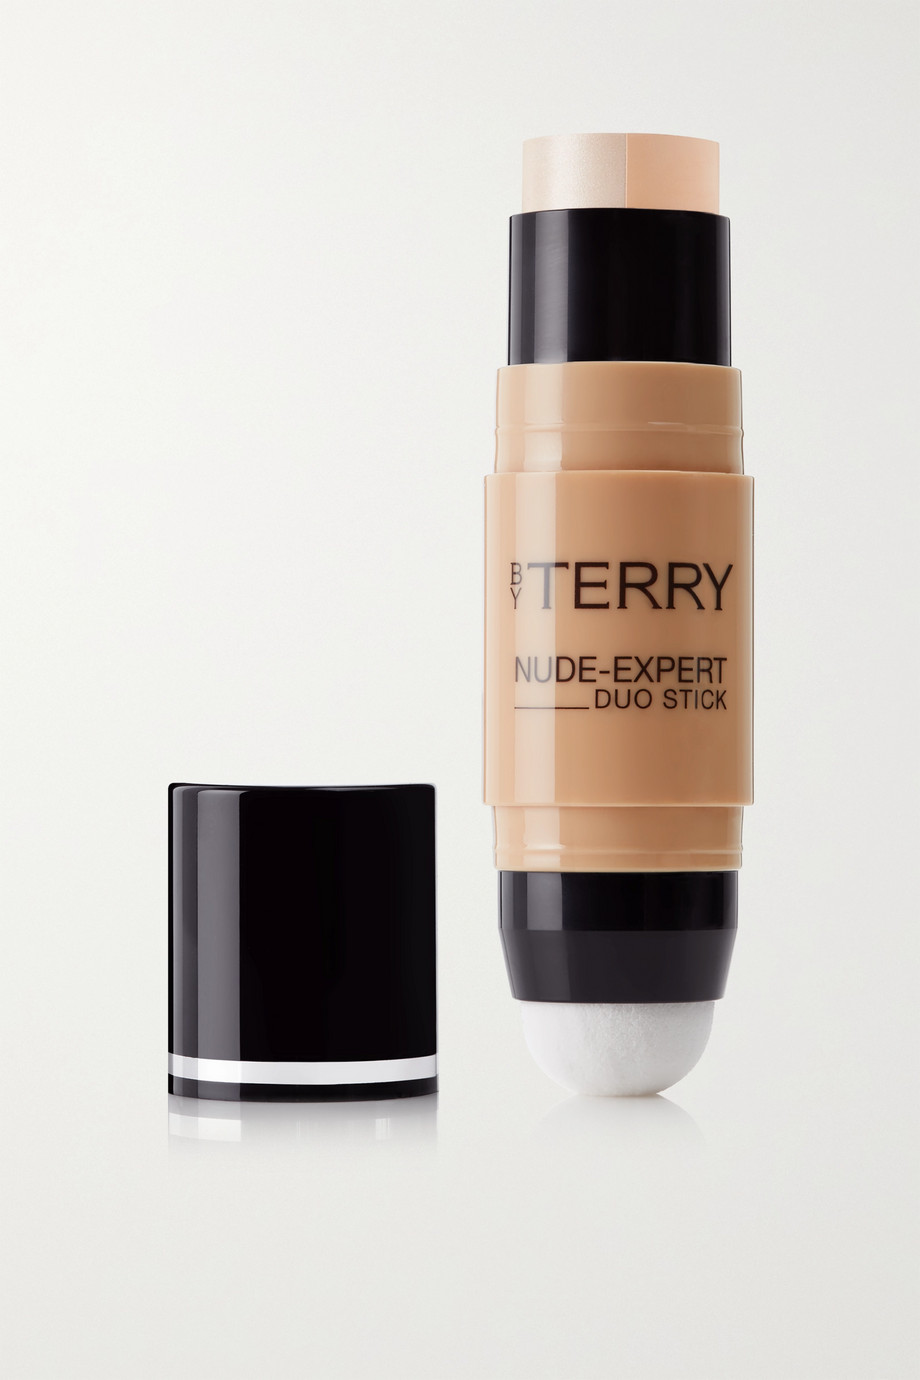 BY TERRY Nude Expert Foundation Duo Stick - Fair Beige 1